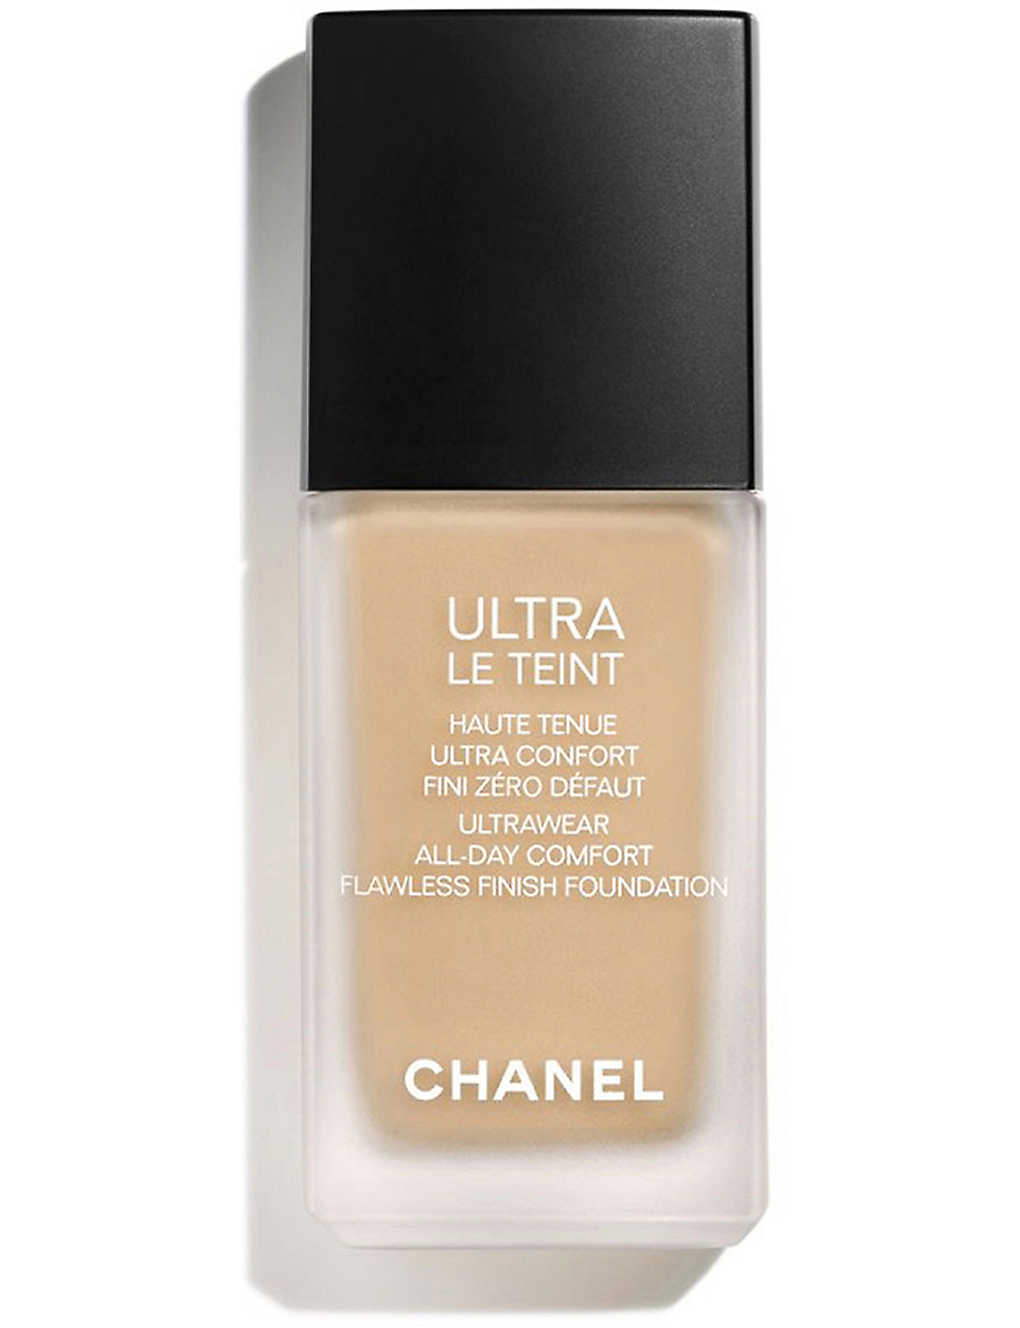 <STRONG>ULTRA LE TEINT</STRONG> Ultrawear All-Day Comfort Flawless Finish Foundation 30ml - B30